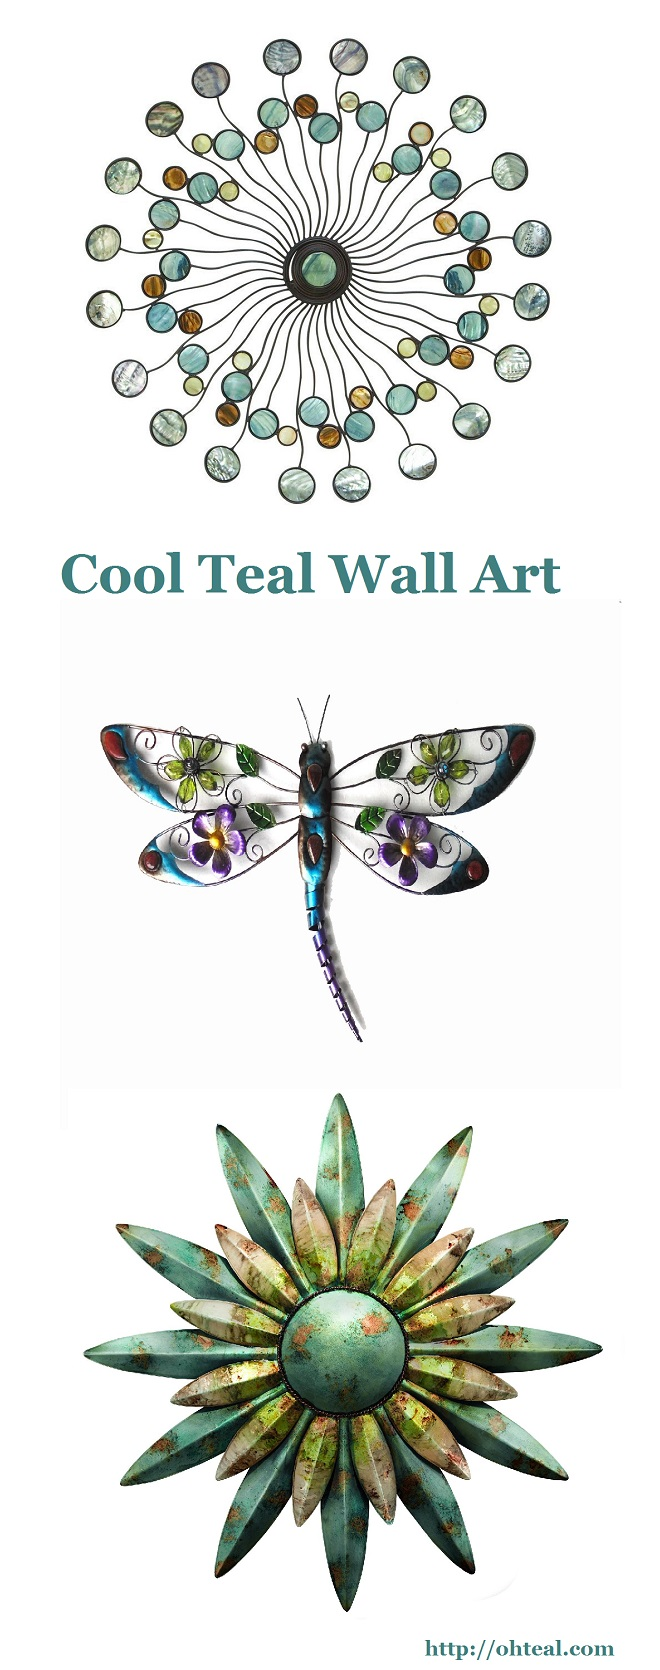 Cool Teal Wall Art